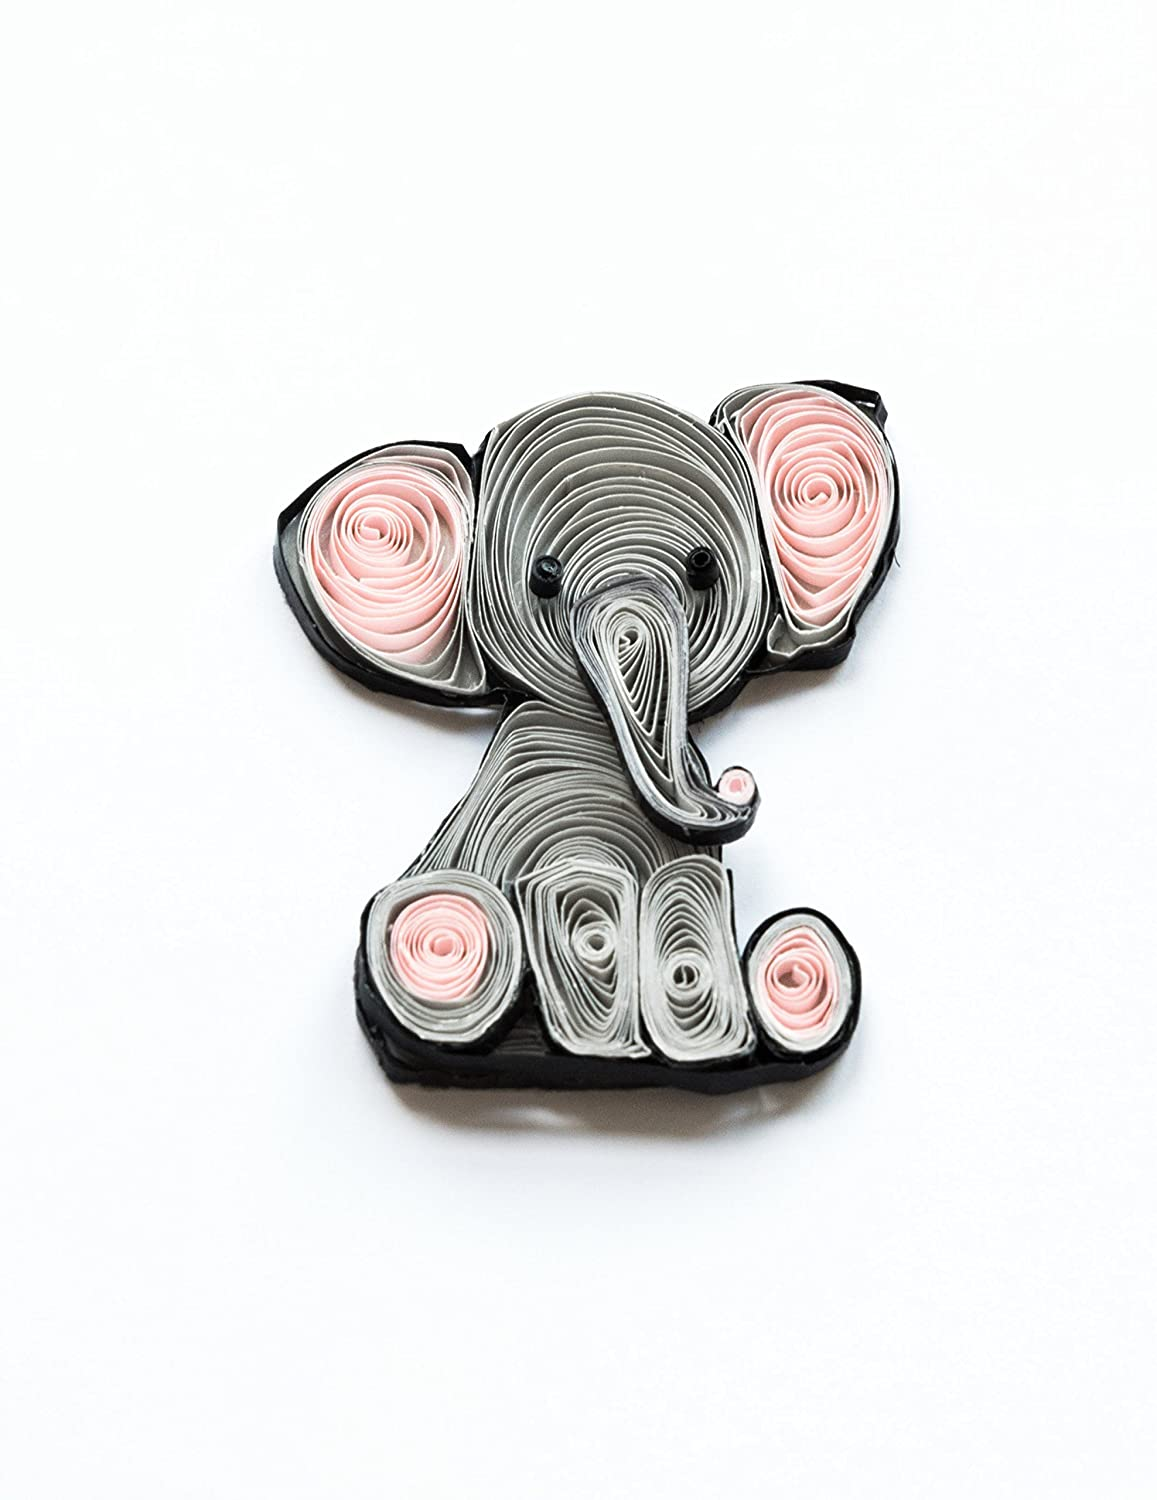 Amazon.com: Nursery Decor Elephant Wall Art Baby Shower Gift For New Boy Girl Paper Quilled: Handmade